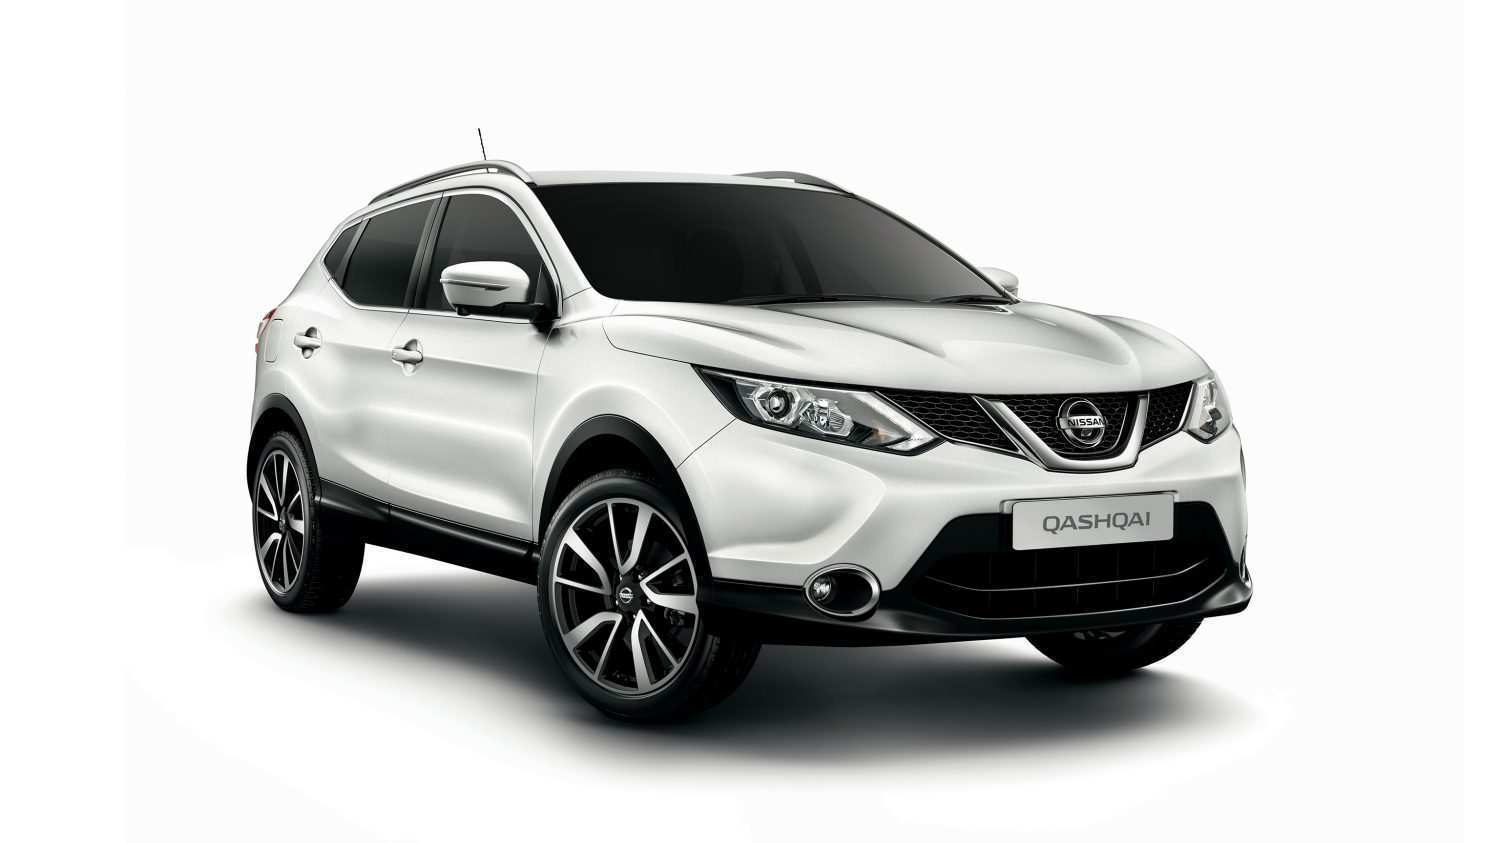 57 All New Nissan Qashqai 2020 Egypt Review